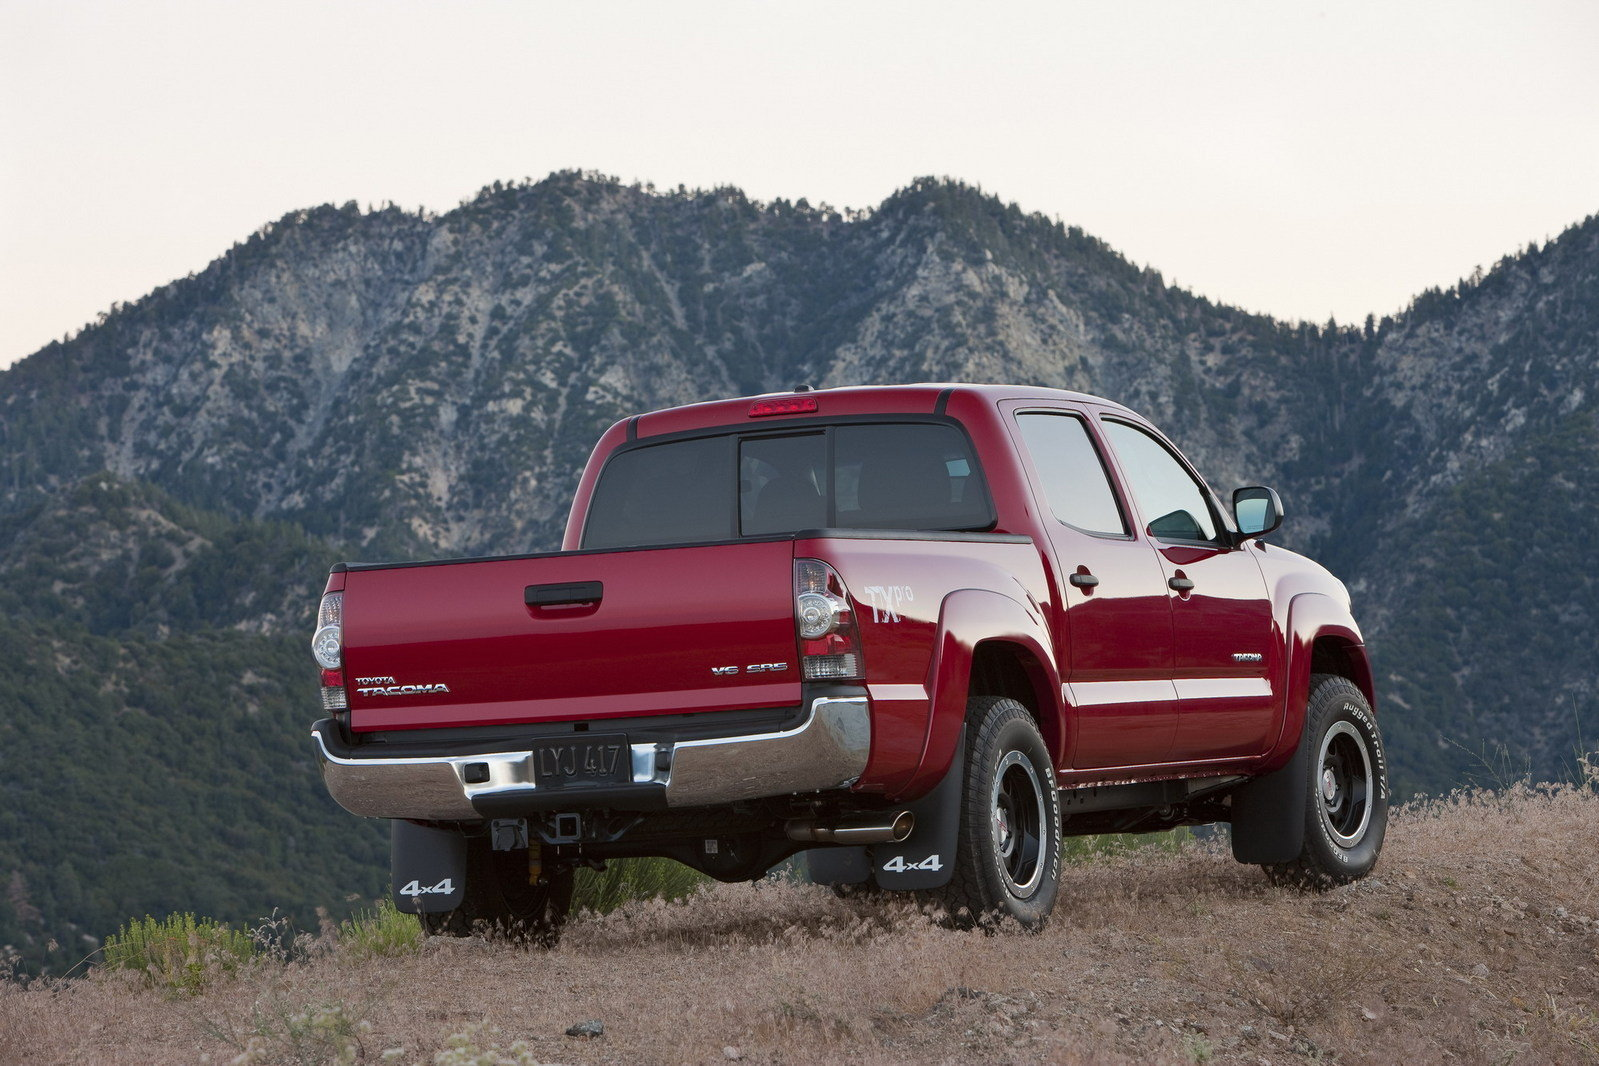 2011 toyota tacoma picture 371396 car review top speed. Black Bedroom Furniture Sets. Home Design Ideas